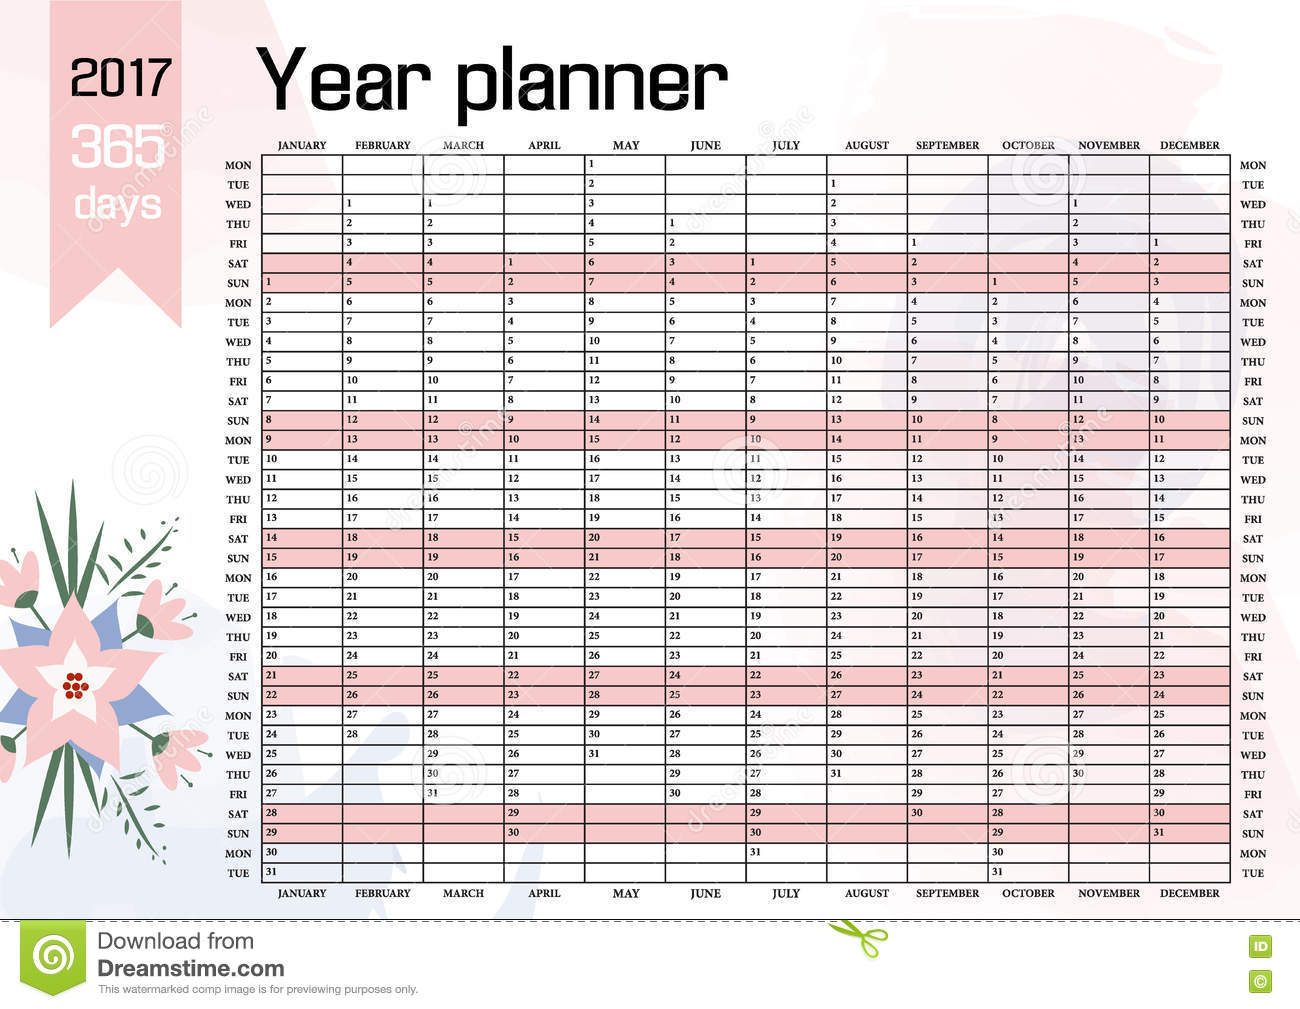 2017 Calendar Download 17 free printable Excel templates (.xls)